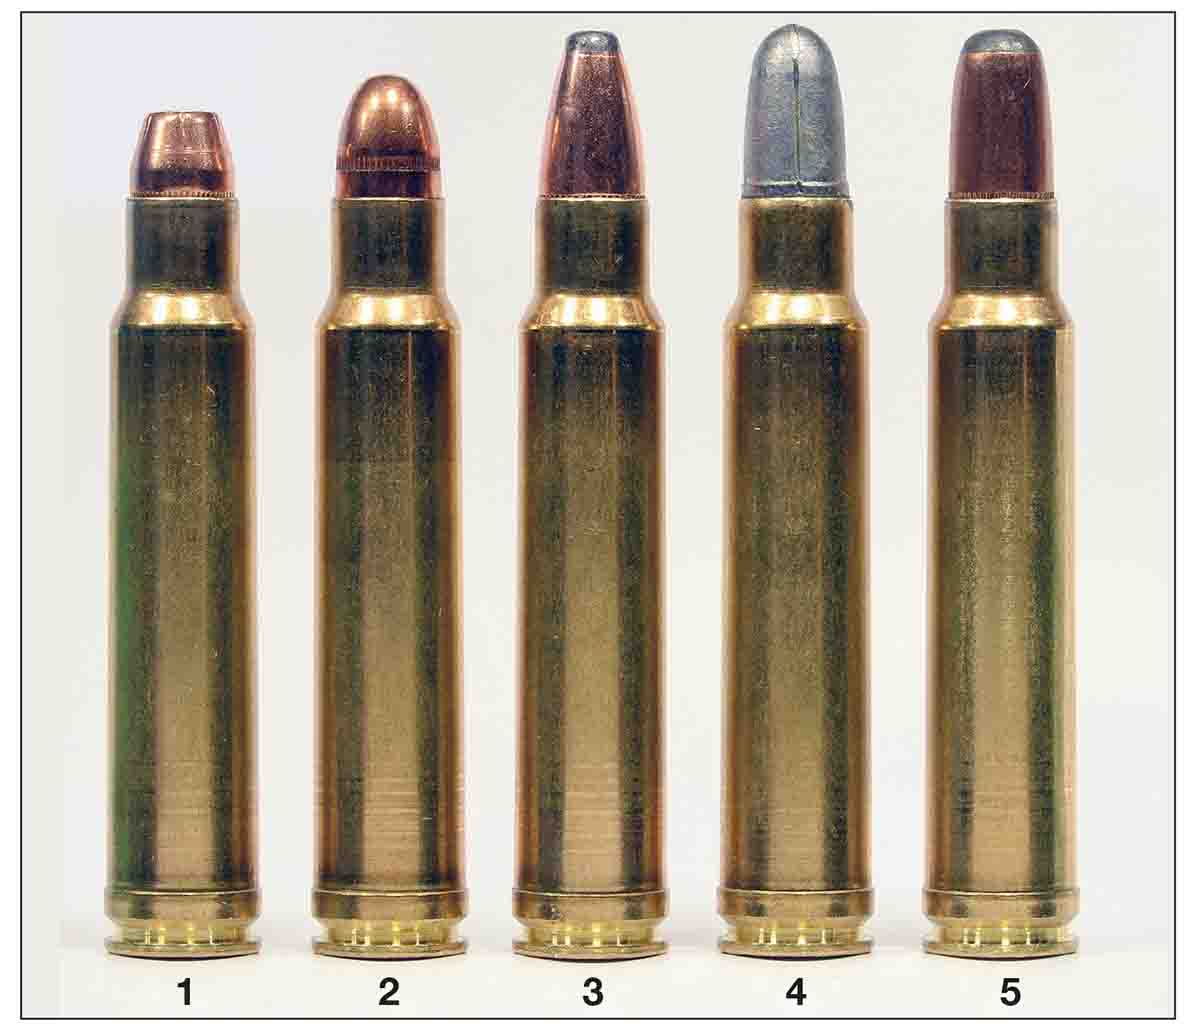 A cross-section of loads for the .358 Norma Magnum include the (1) Sierra 125-grain JHP, (2) Sierra 170 FMJ, (3) Speer 180, (4) 200-grain cast bullet and a (5) Sierra 200 roundnose.